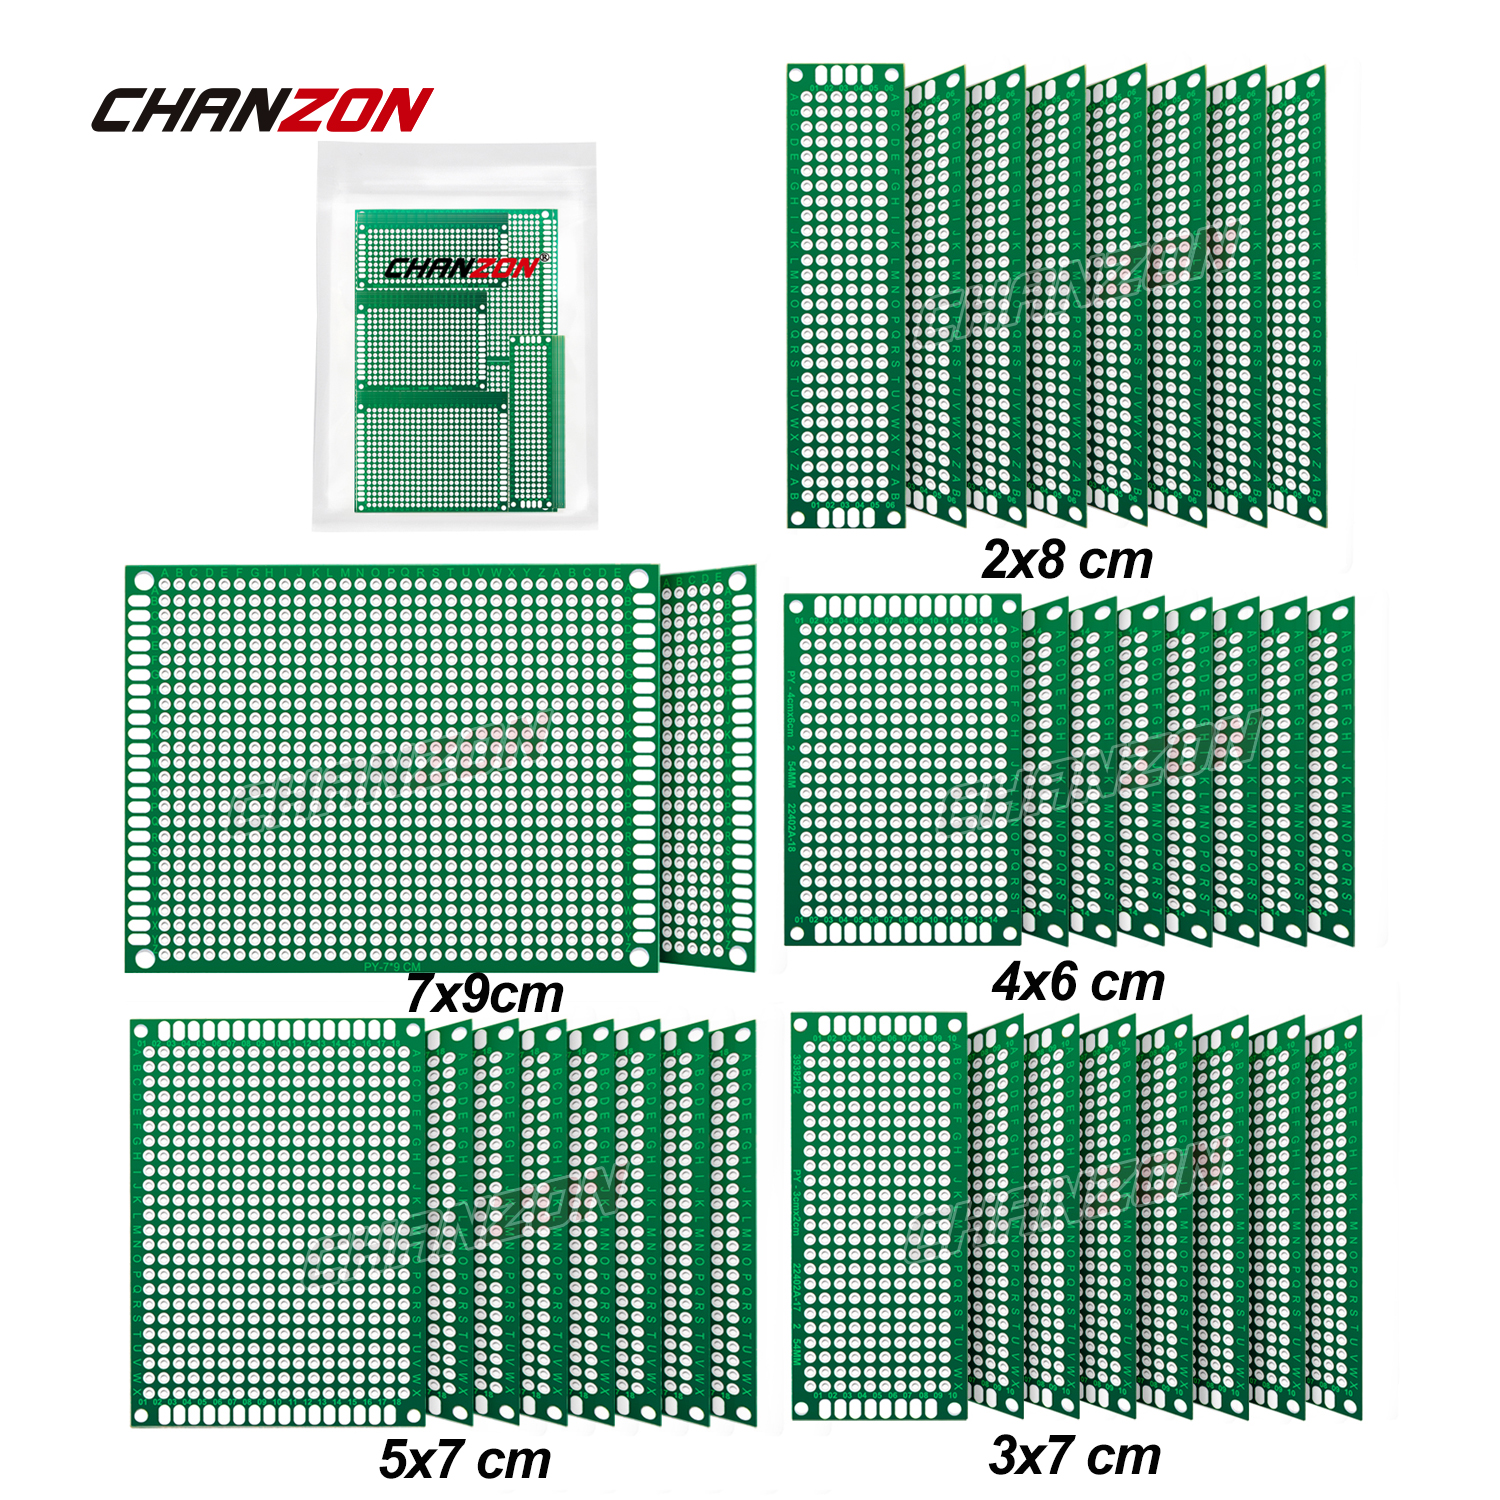 34 Pcs Double Sided PCB Board Tinned ( 2X8 3X7 4X6 5X7 7x9 cm ) Prototype Kit FR4 Printed Universal Circuit Perfboard for DIY